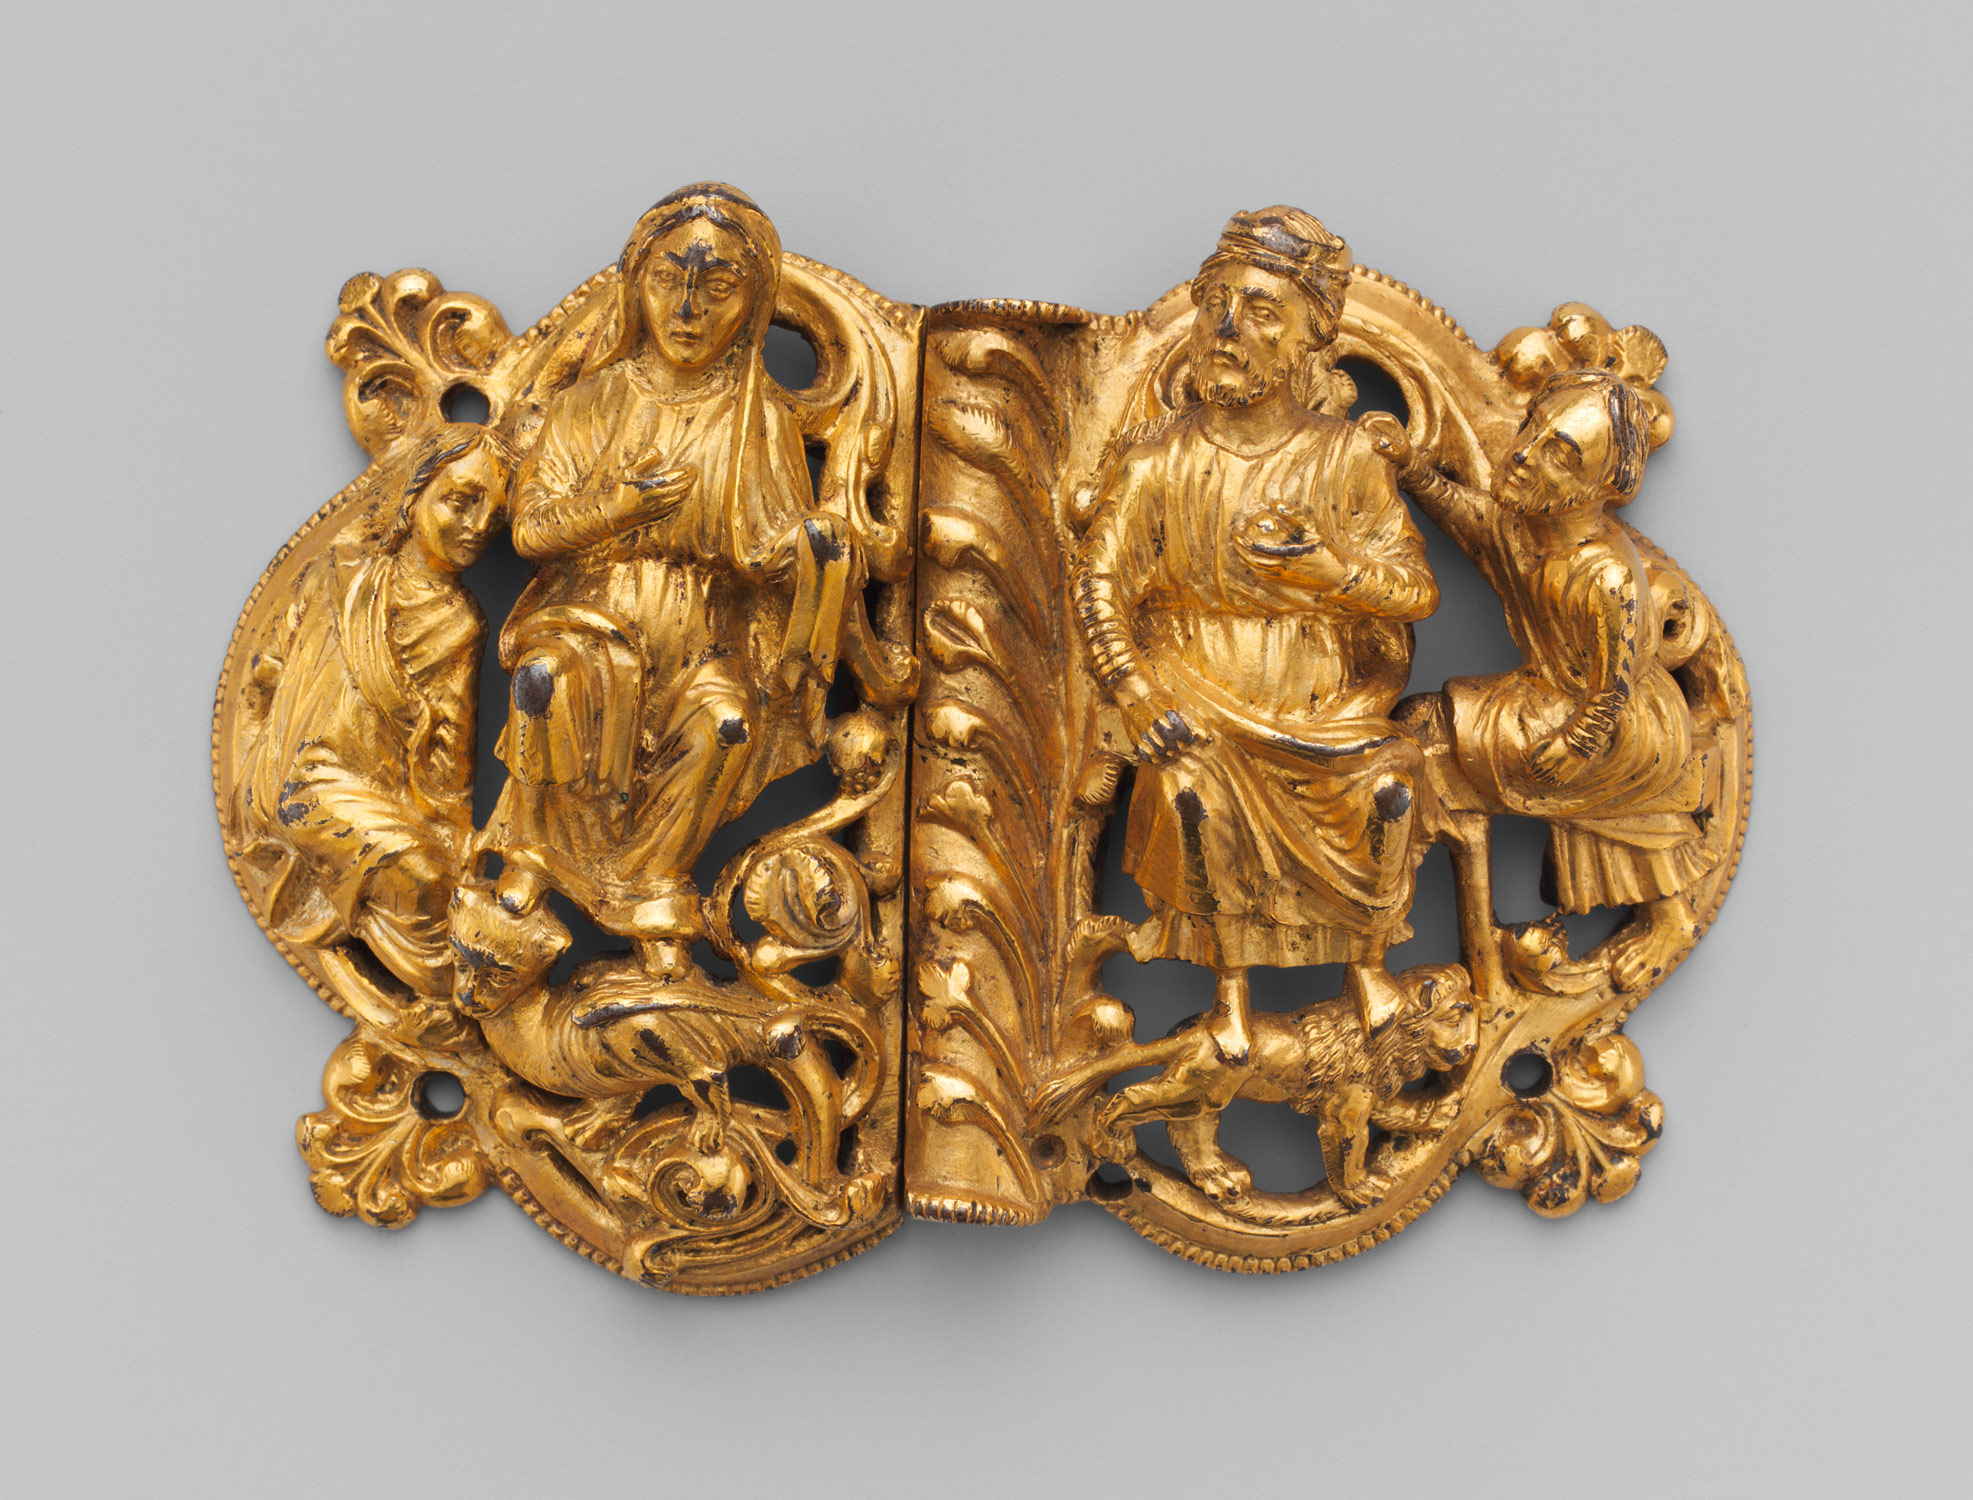 Buckle with Seated Couple